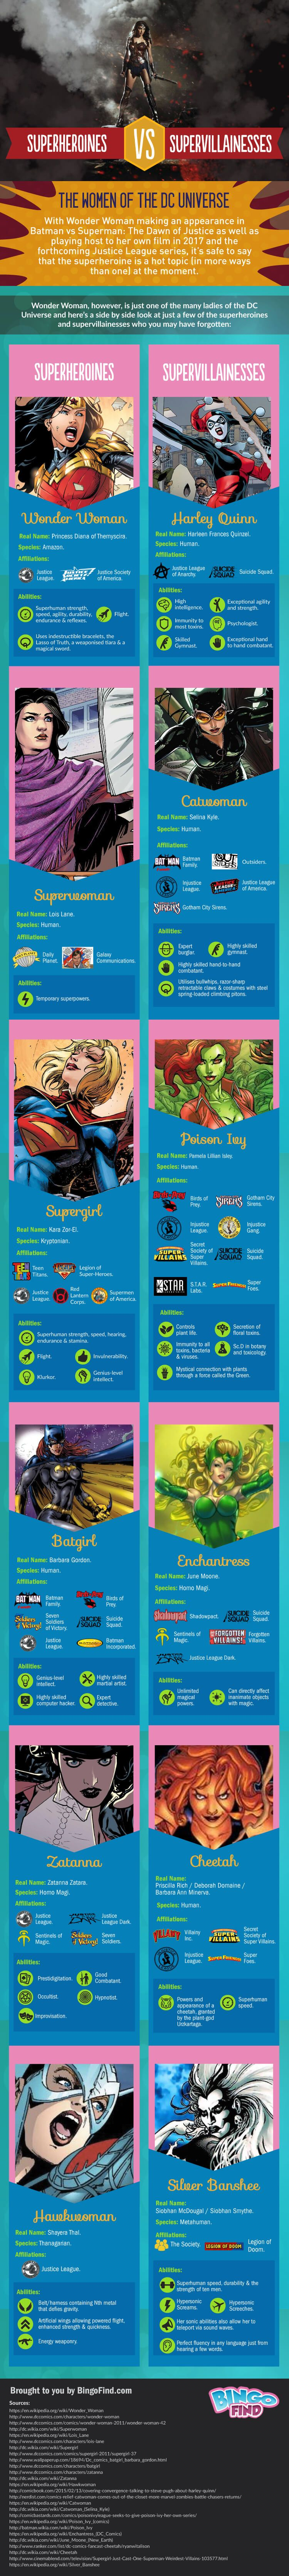 Superheroines vs Supervillainesses: The Women of the DC Universe #Infographic